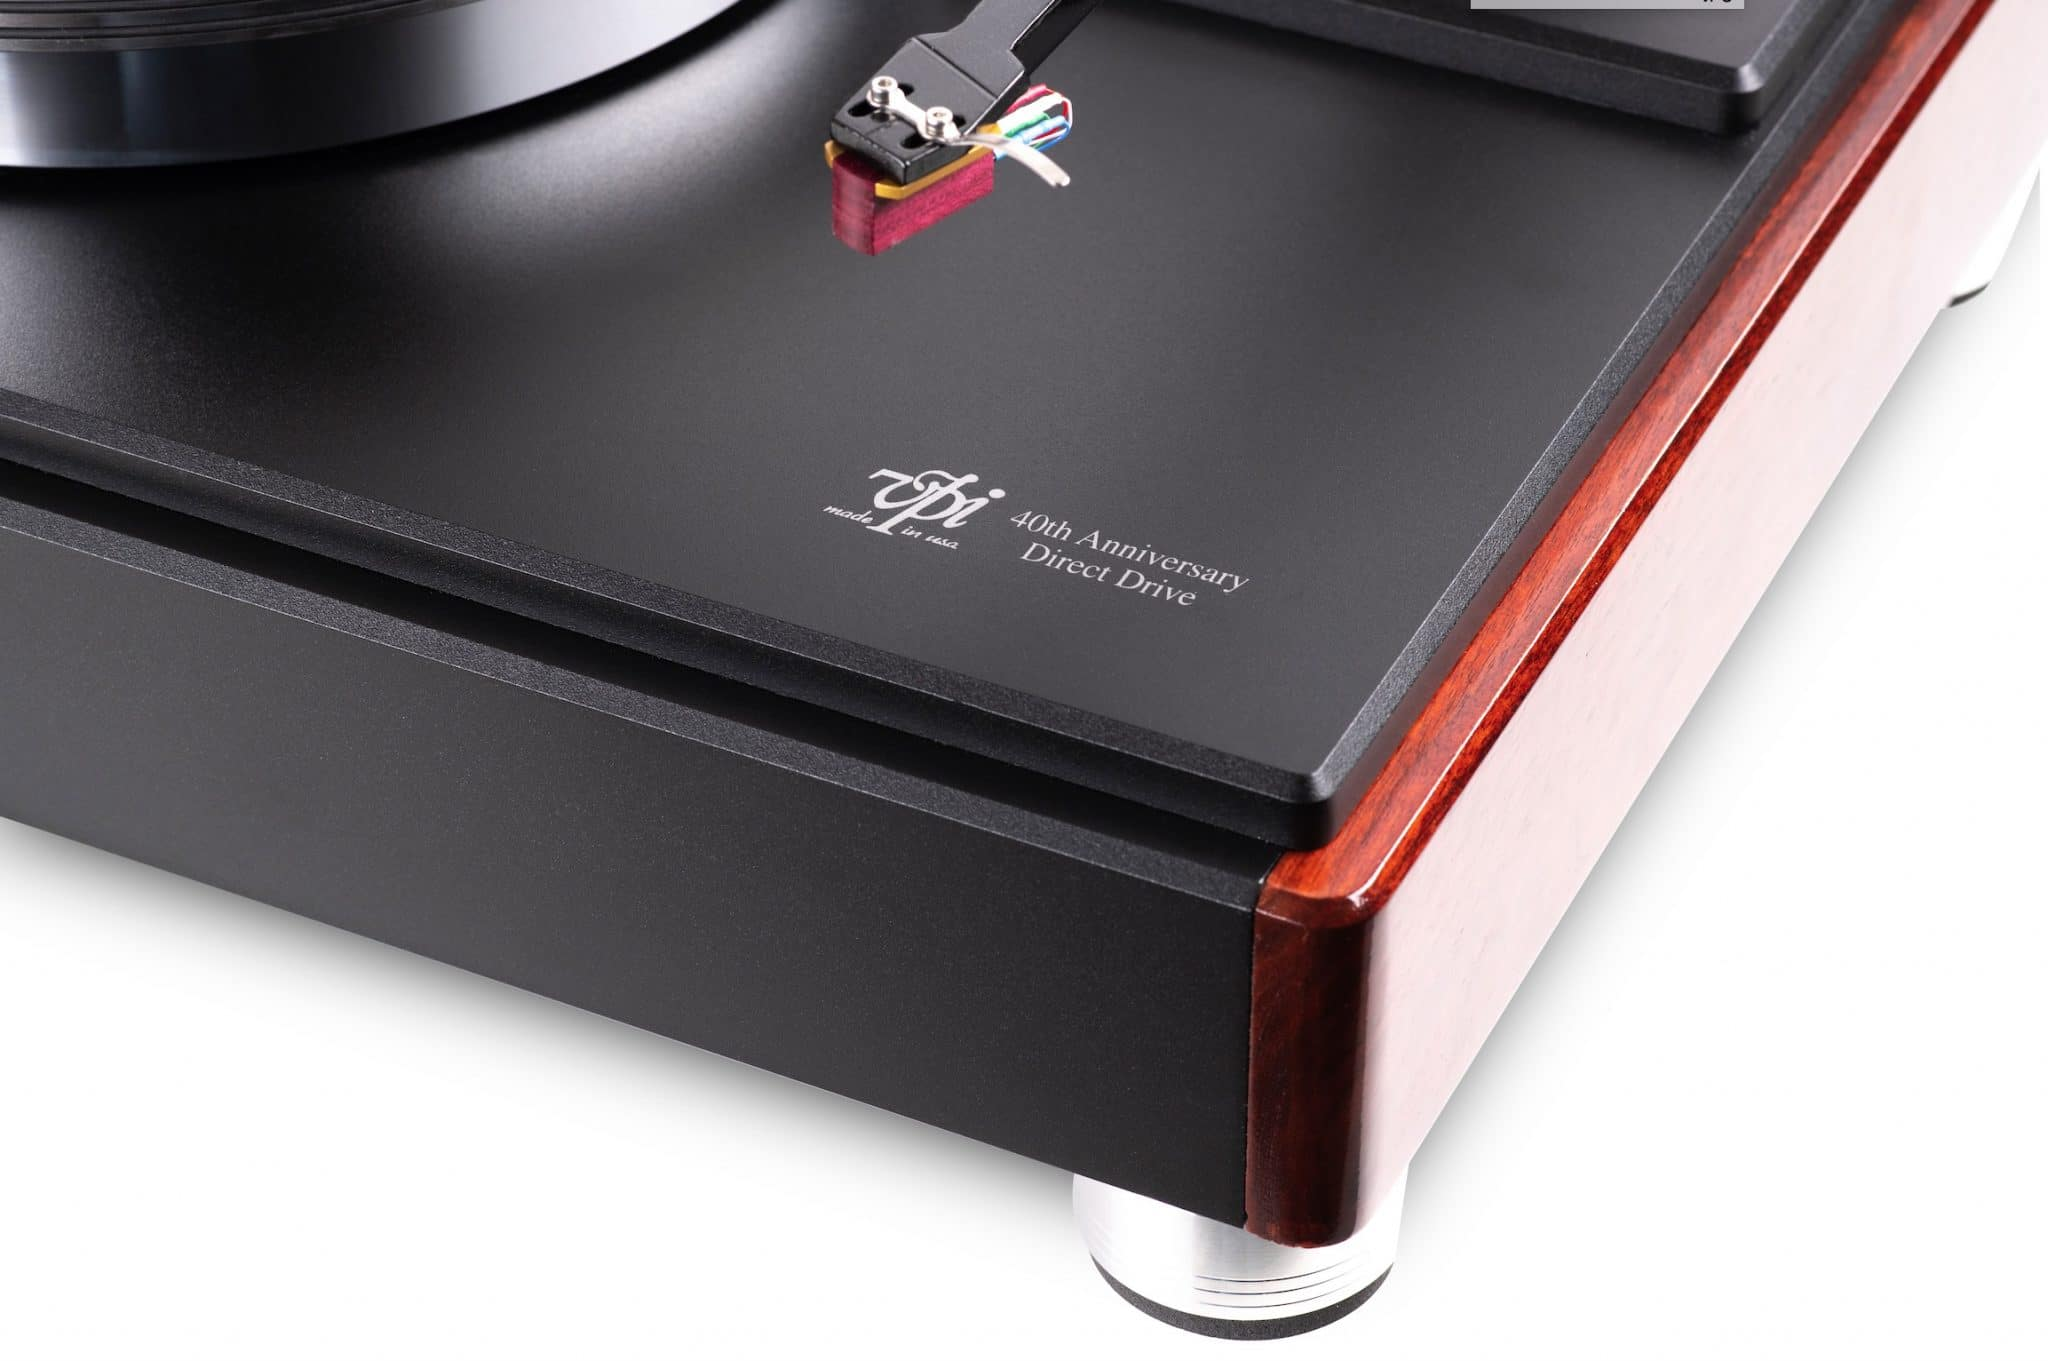 Direct Drive Turntable Review